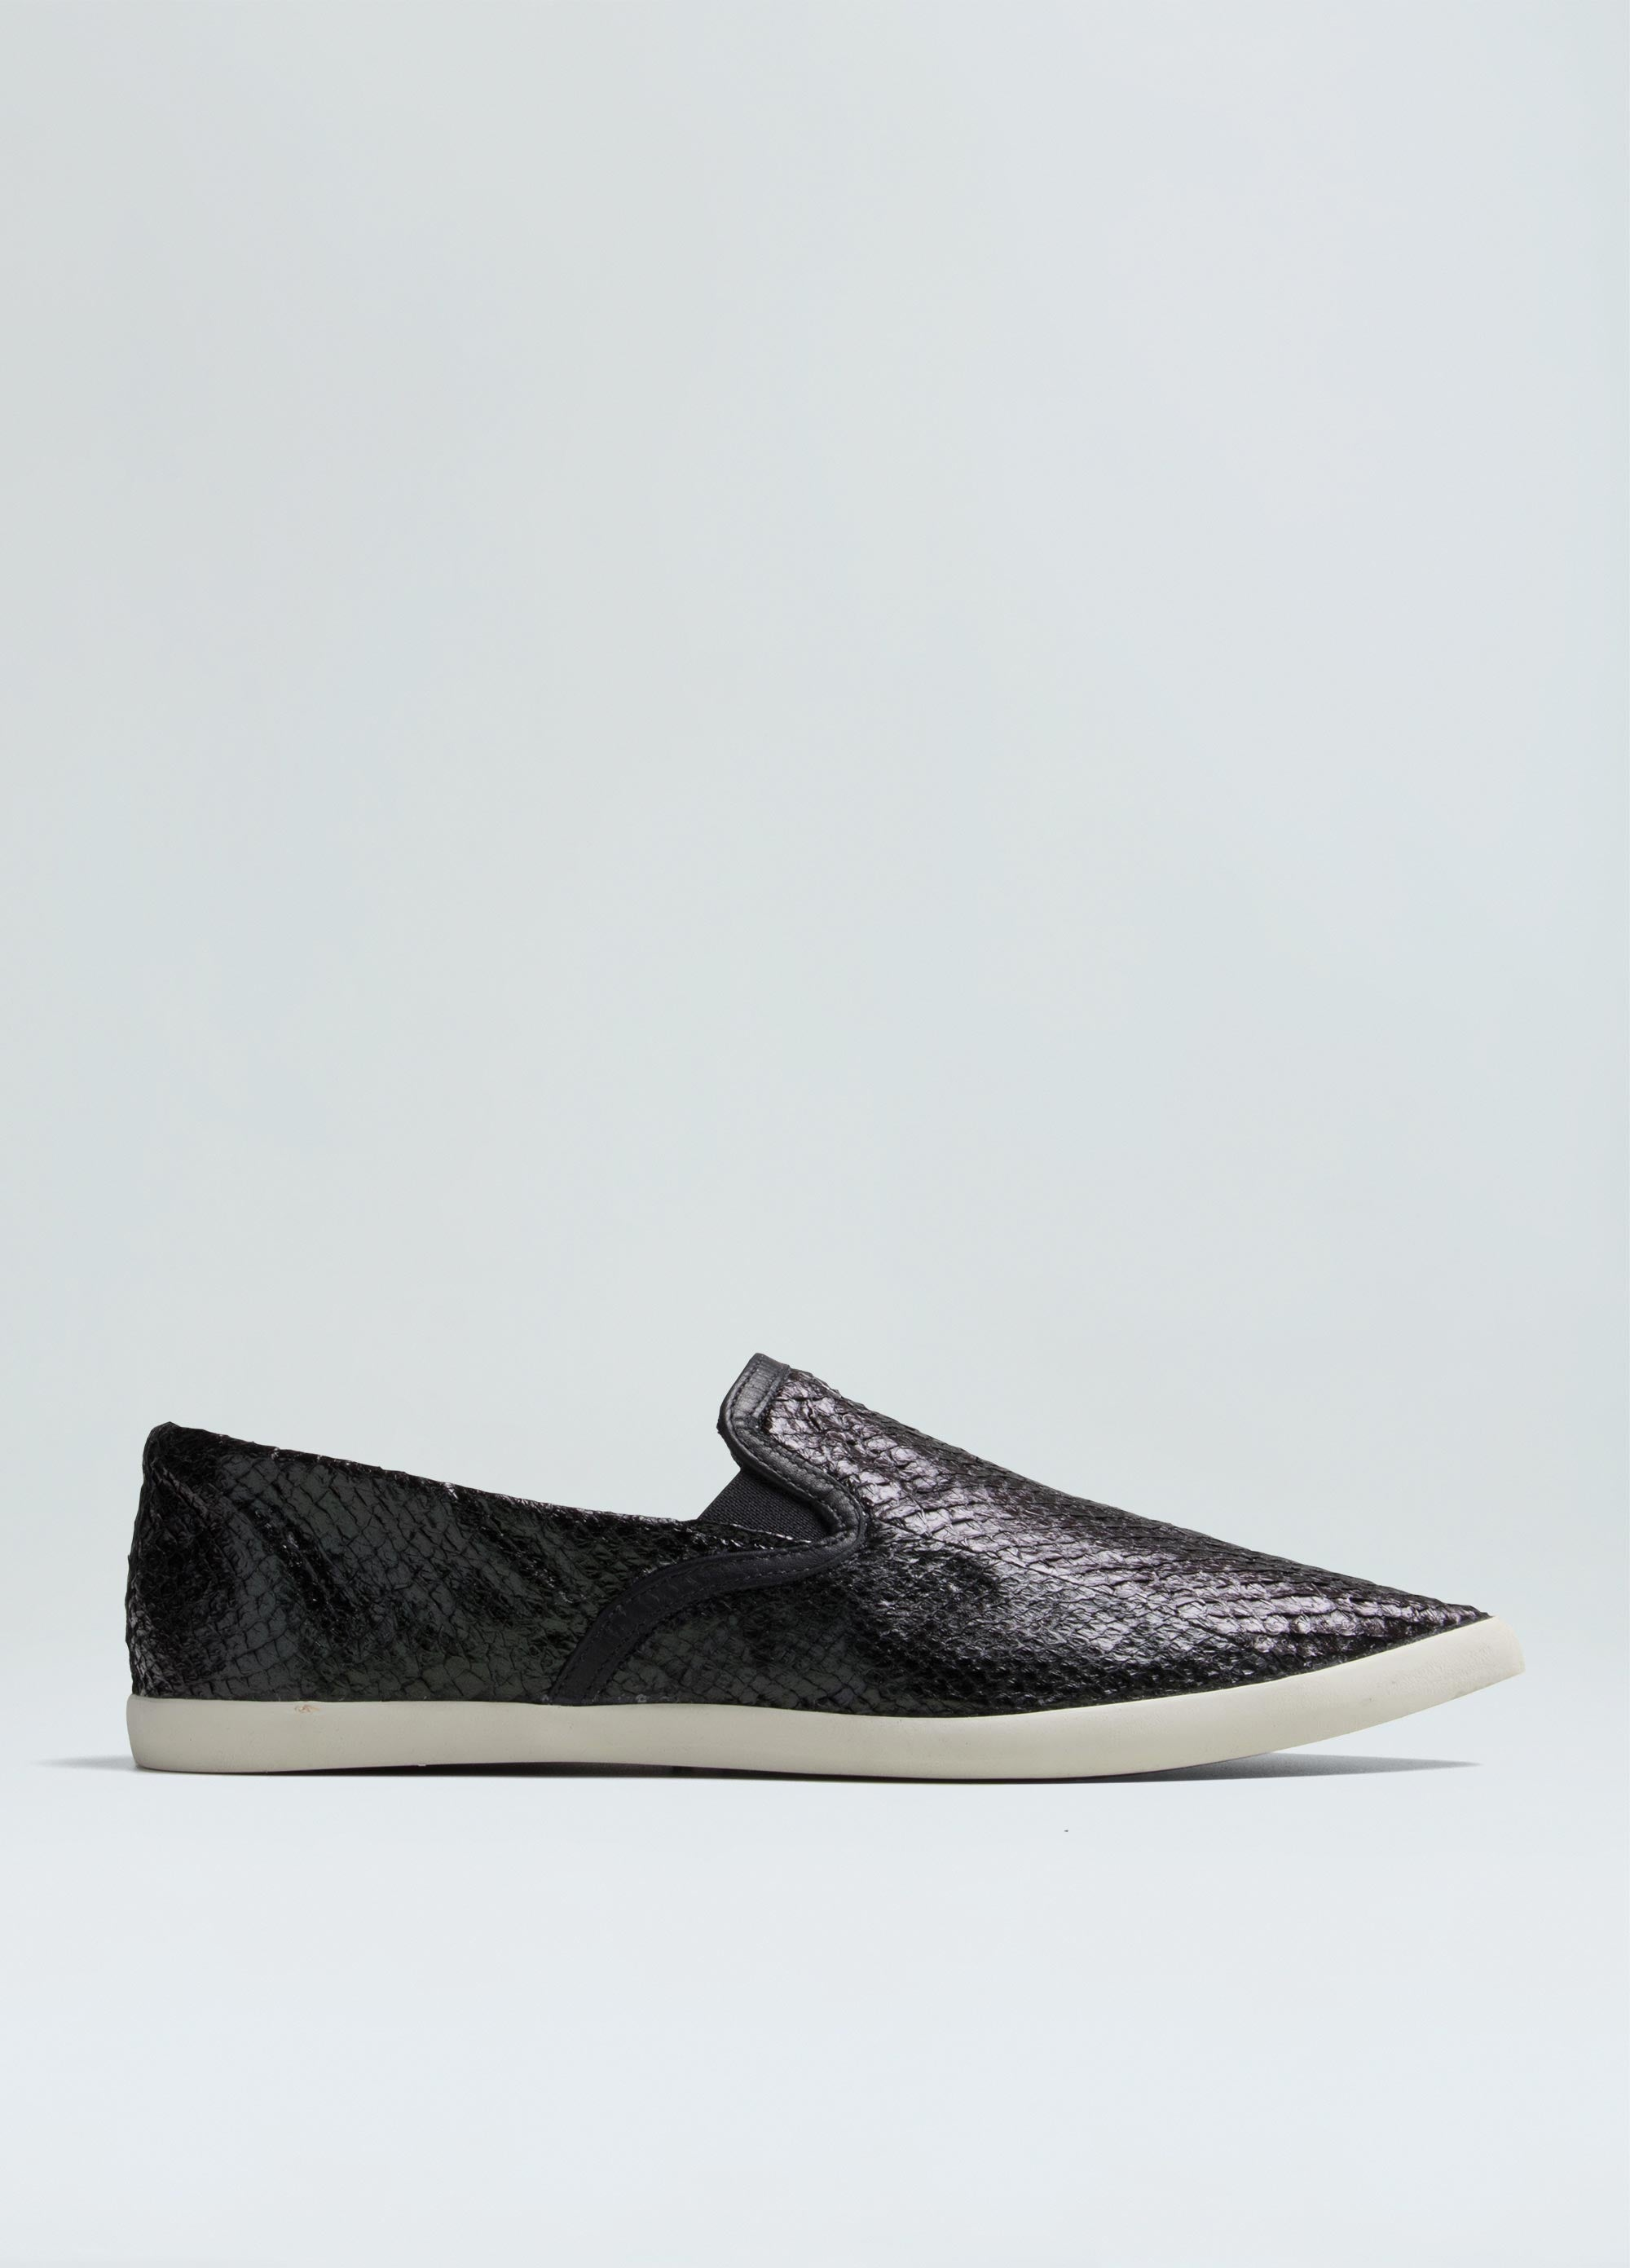 SNEAKERS VIDIGAL SLIP ON SALMAO